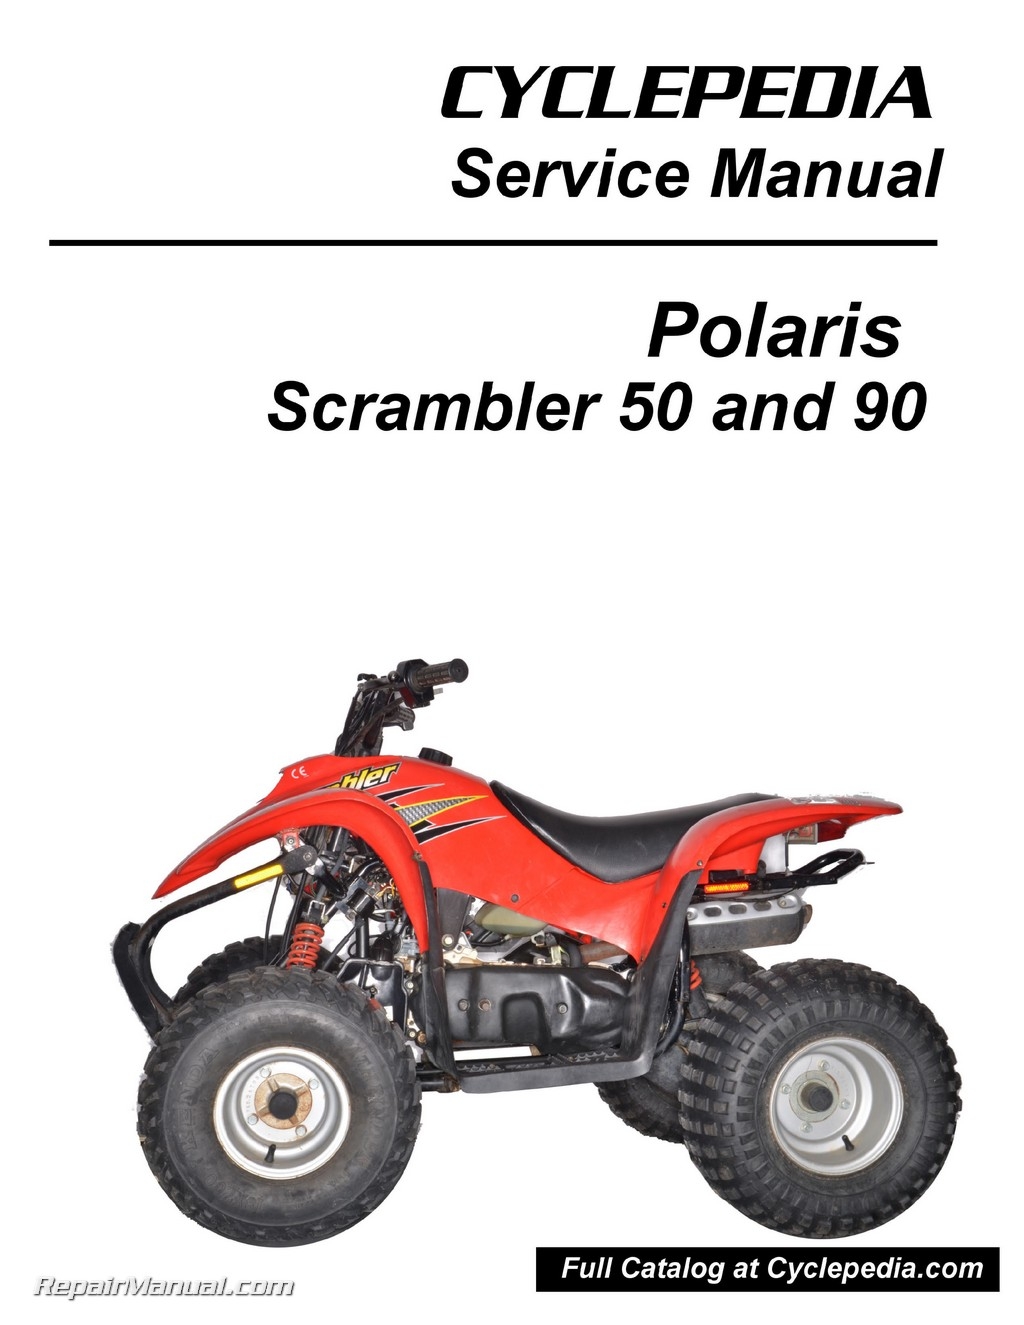 04 Polaris Scrambler 90cc Wiring Diagram Wire Diagrams Led T8 For Wiring Diagram Schematics